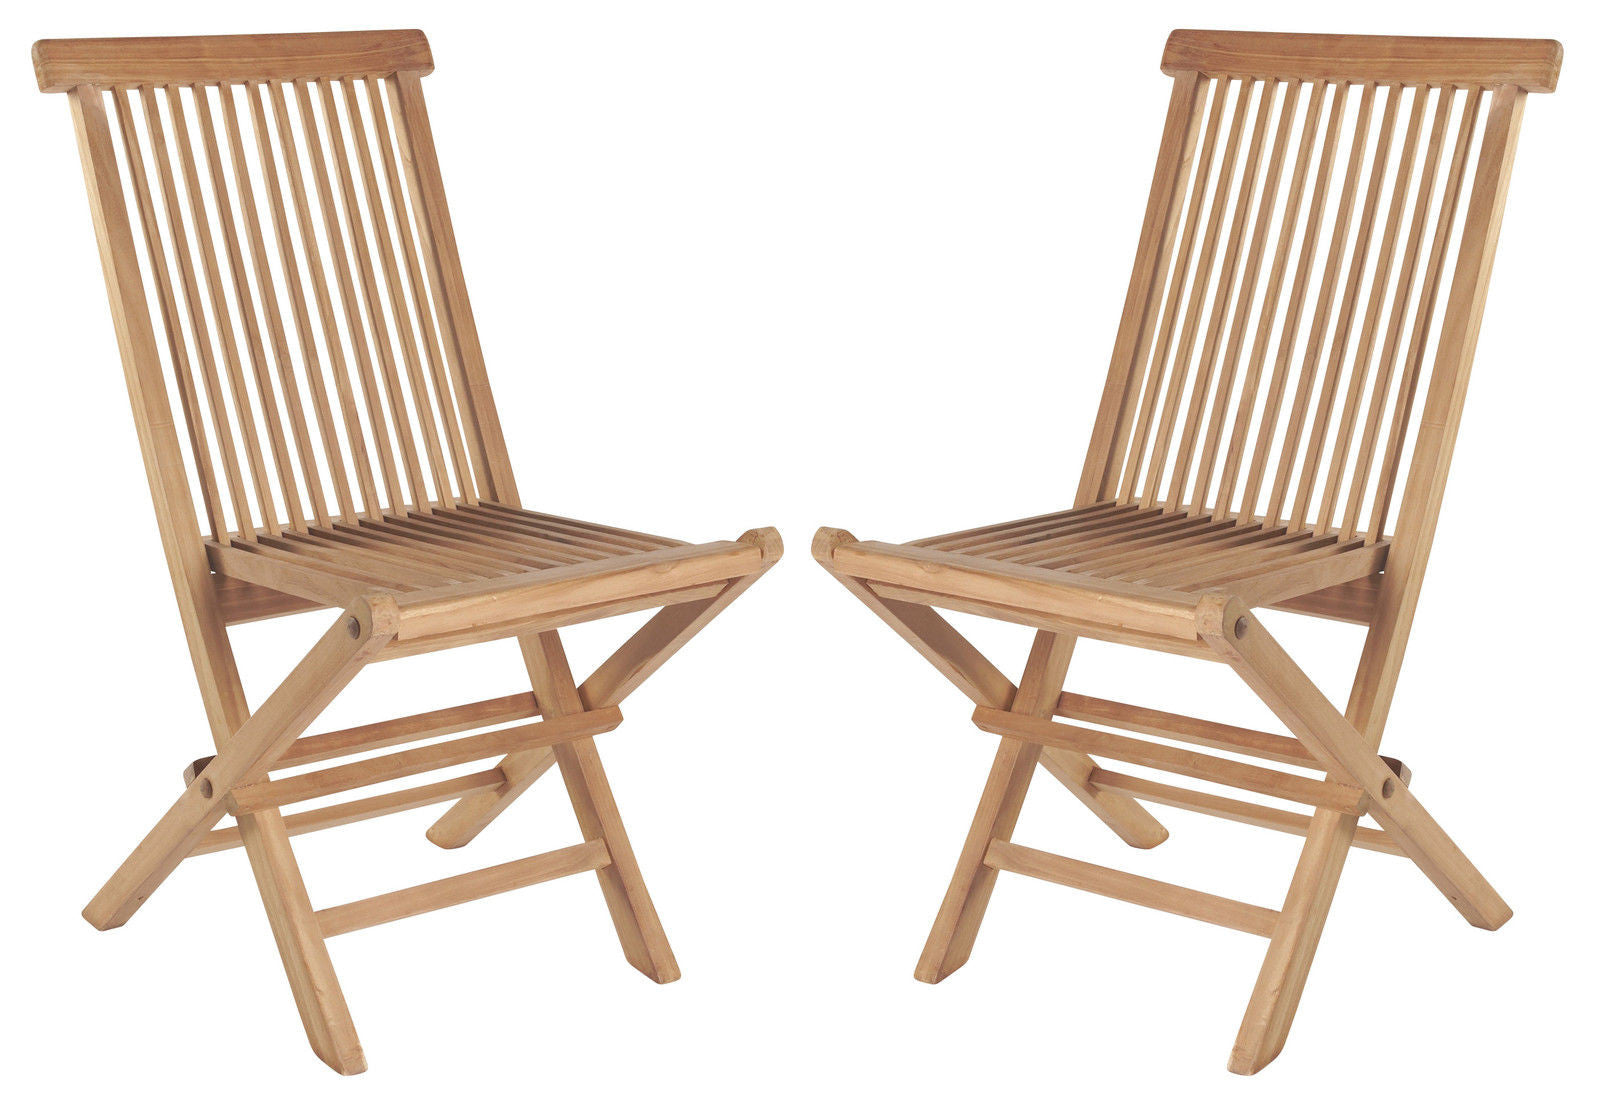 solid teak wood tables chairs sets garden patio furniture pace